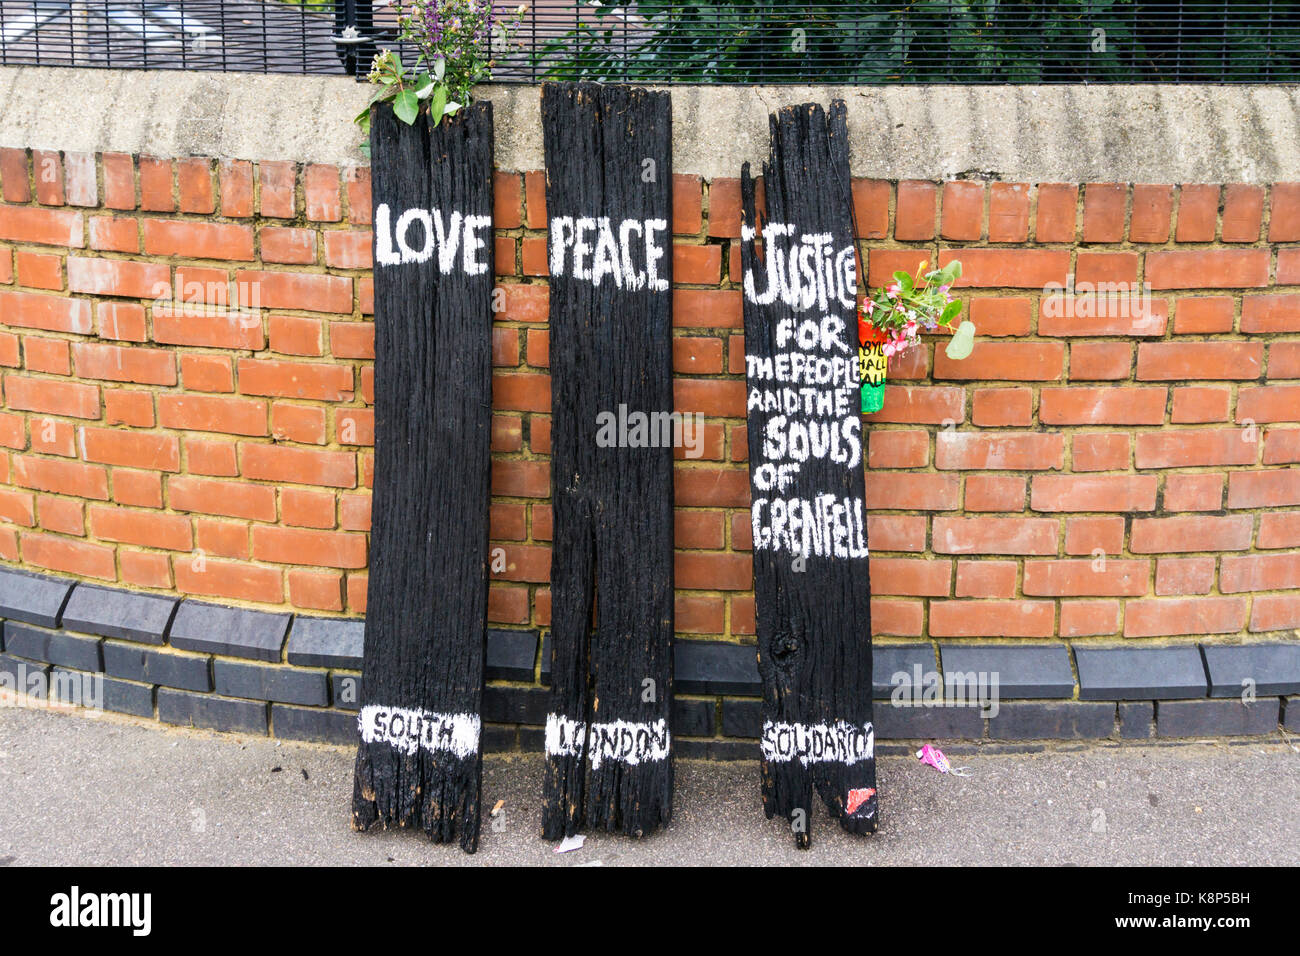 A sign in Crystal Palace expresses solidarity with the people of Grenfell Tower involved in the fire of June 2017 - Stock Image